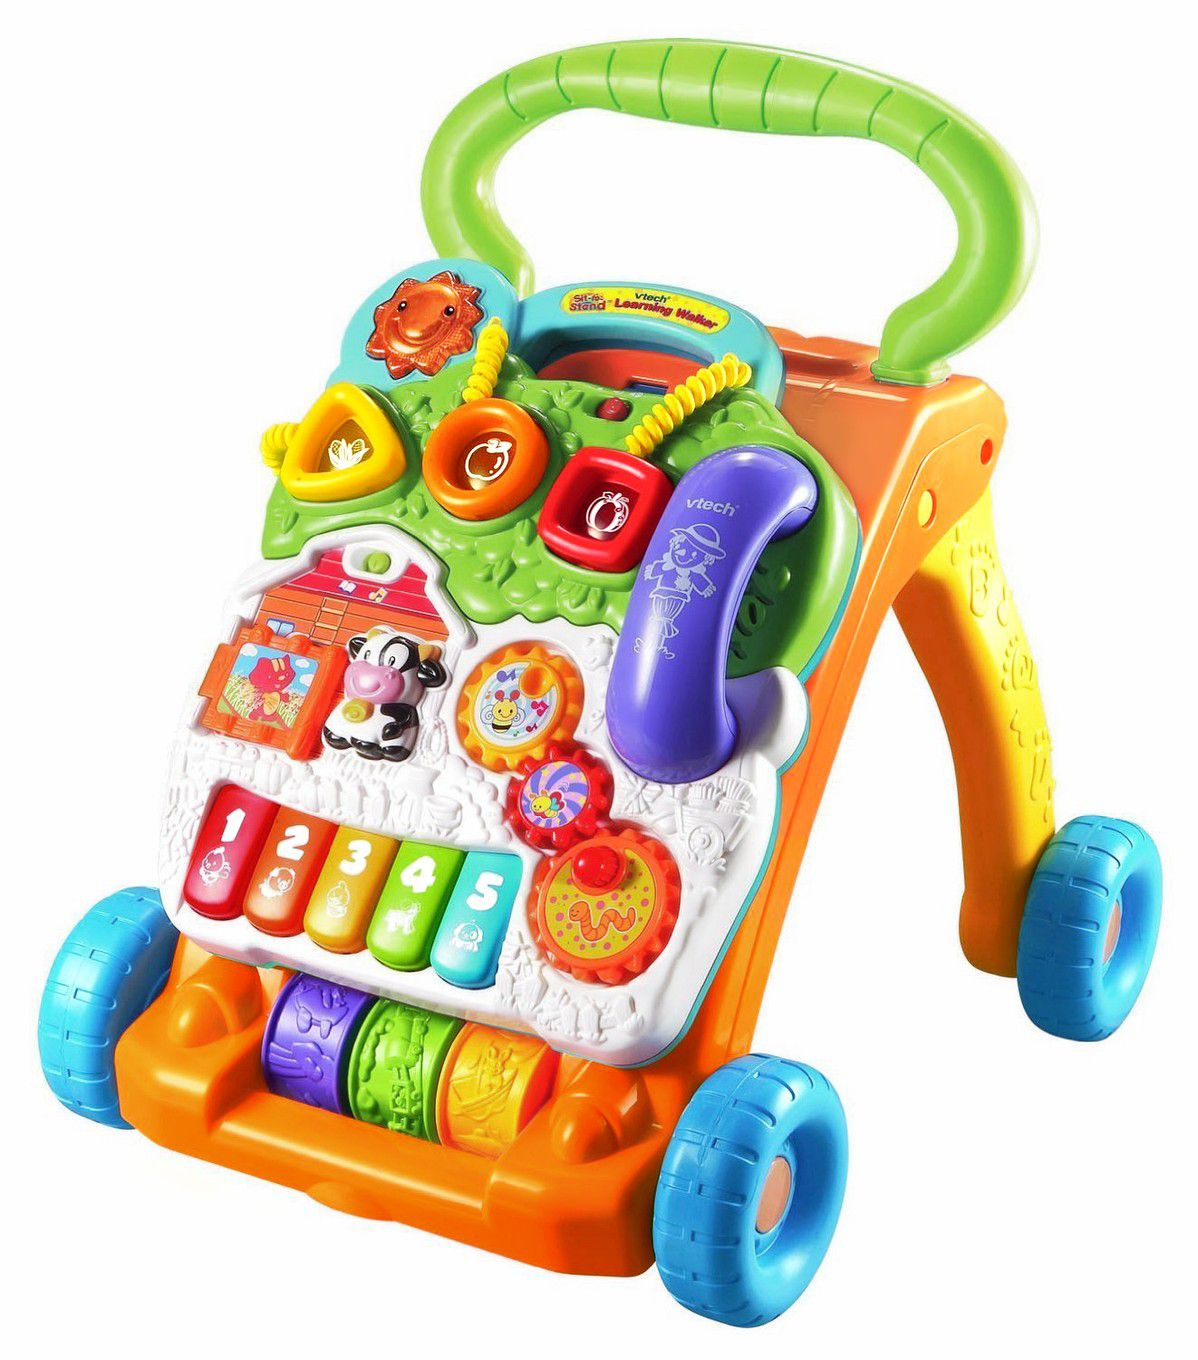 The 10 Best Toys To Buy For One Year Olds In 2019